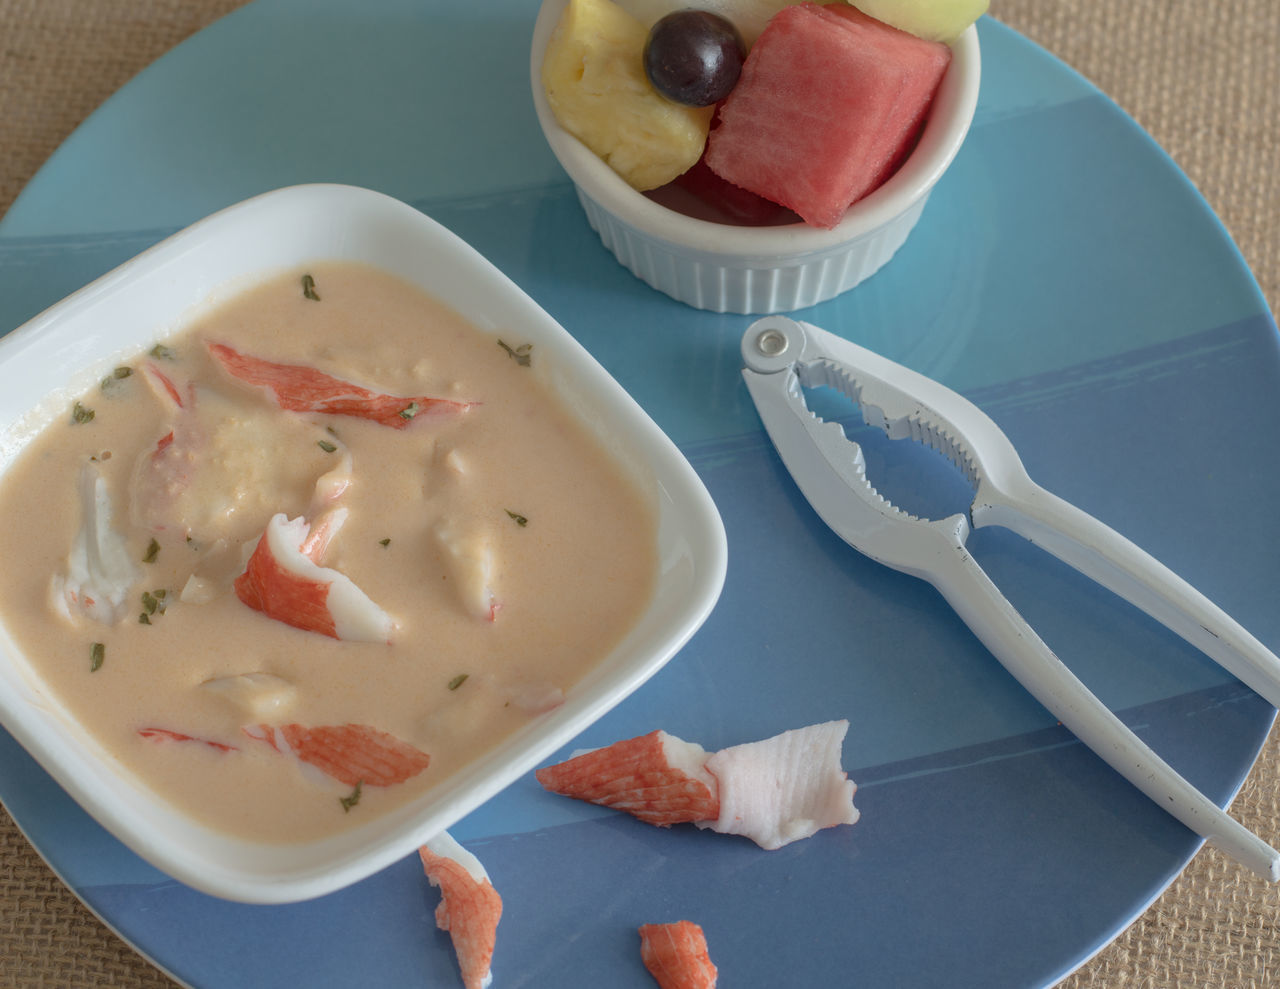 Bisque Bisque Food Food Photography Light Lunch Light Lunch? Lunch Meal Plate Seafood